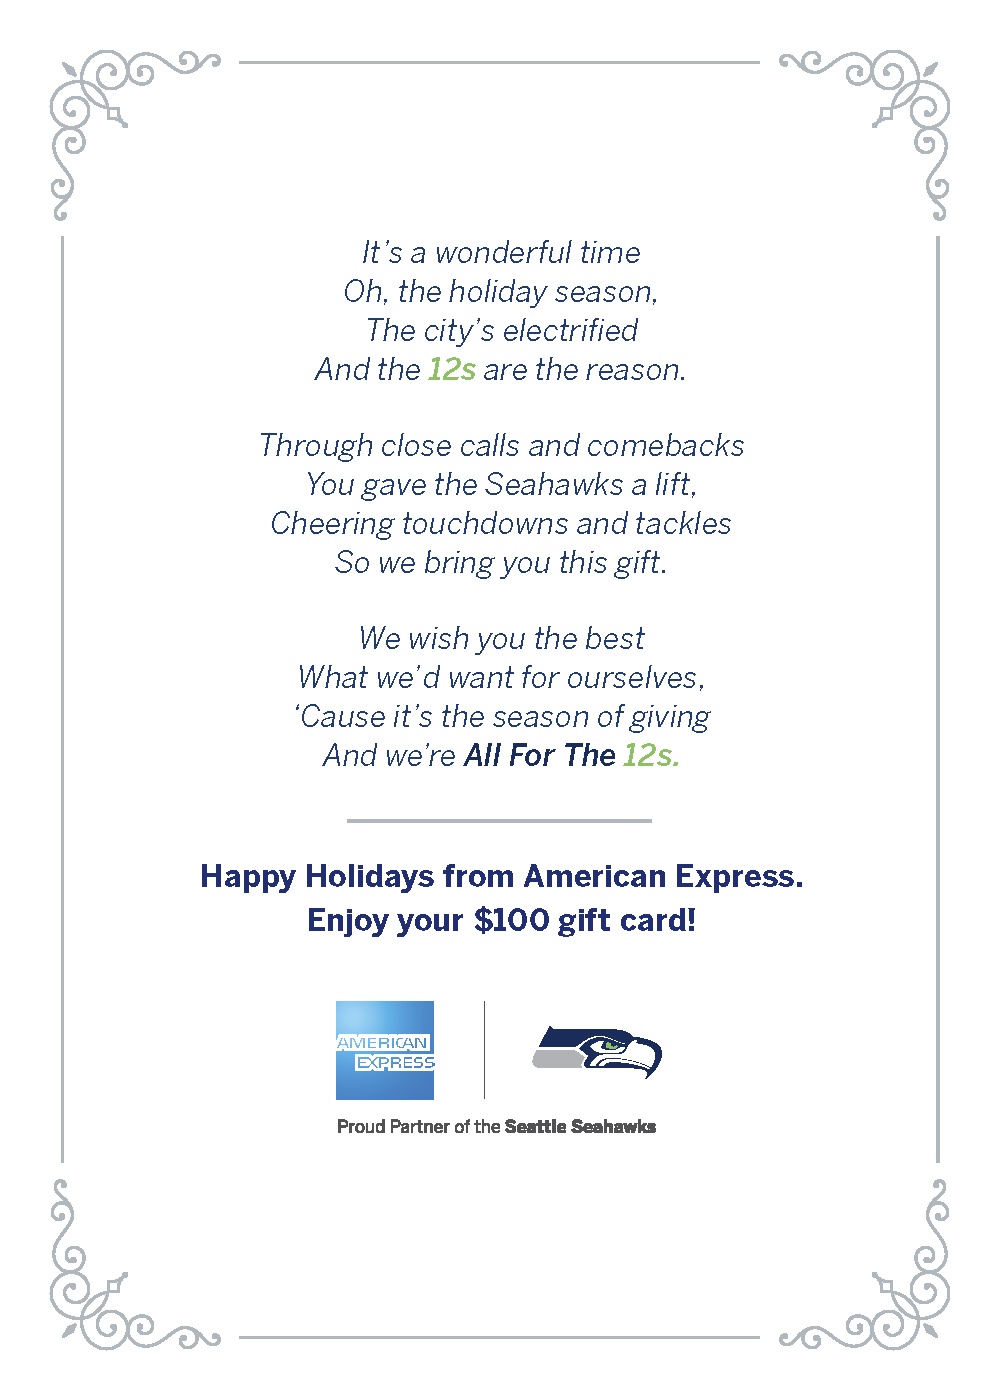 2016 Seahawks HolidayCard_original cover_Page_2.png